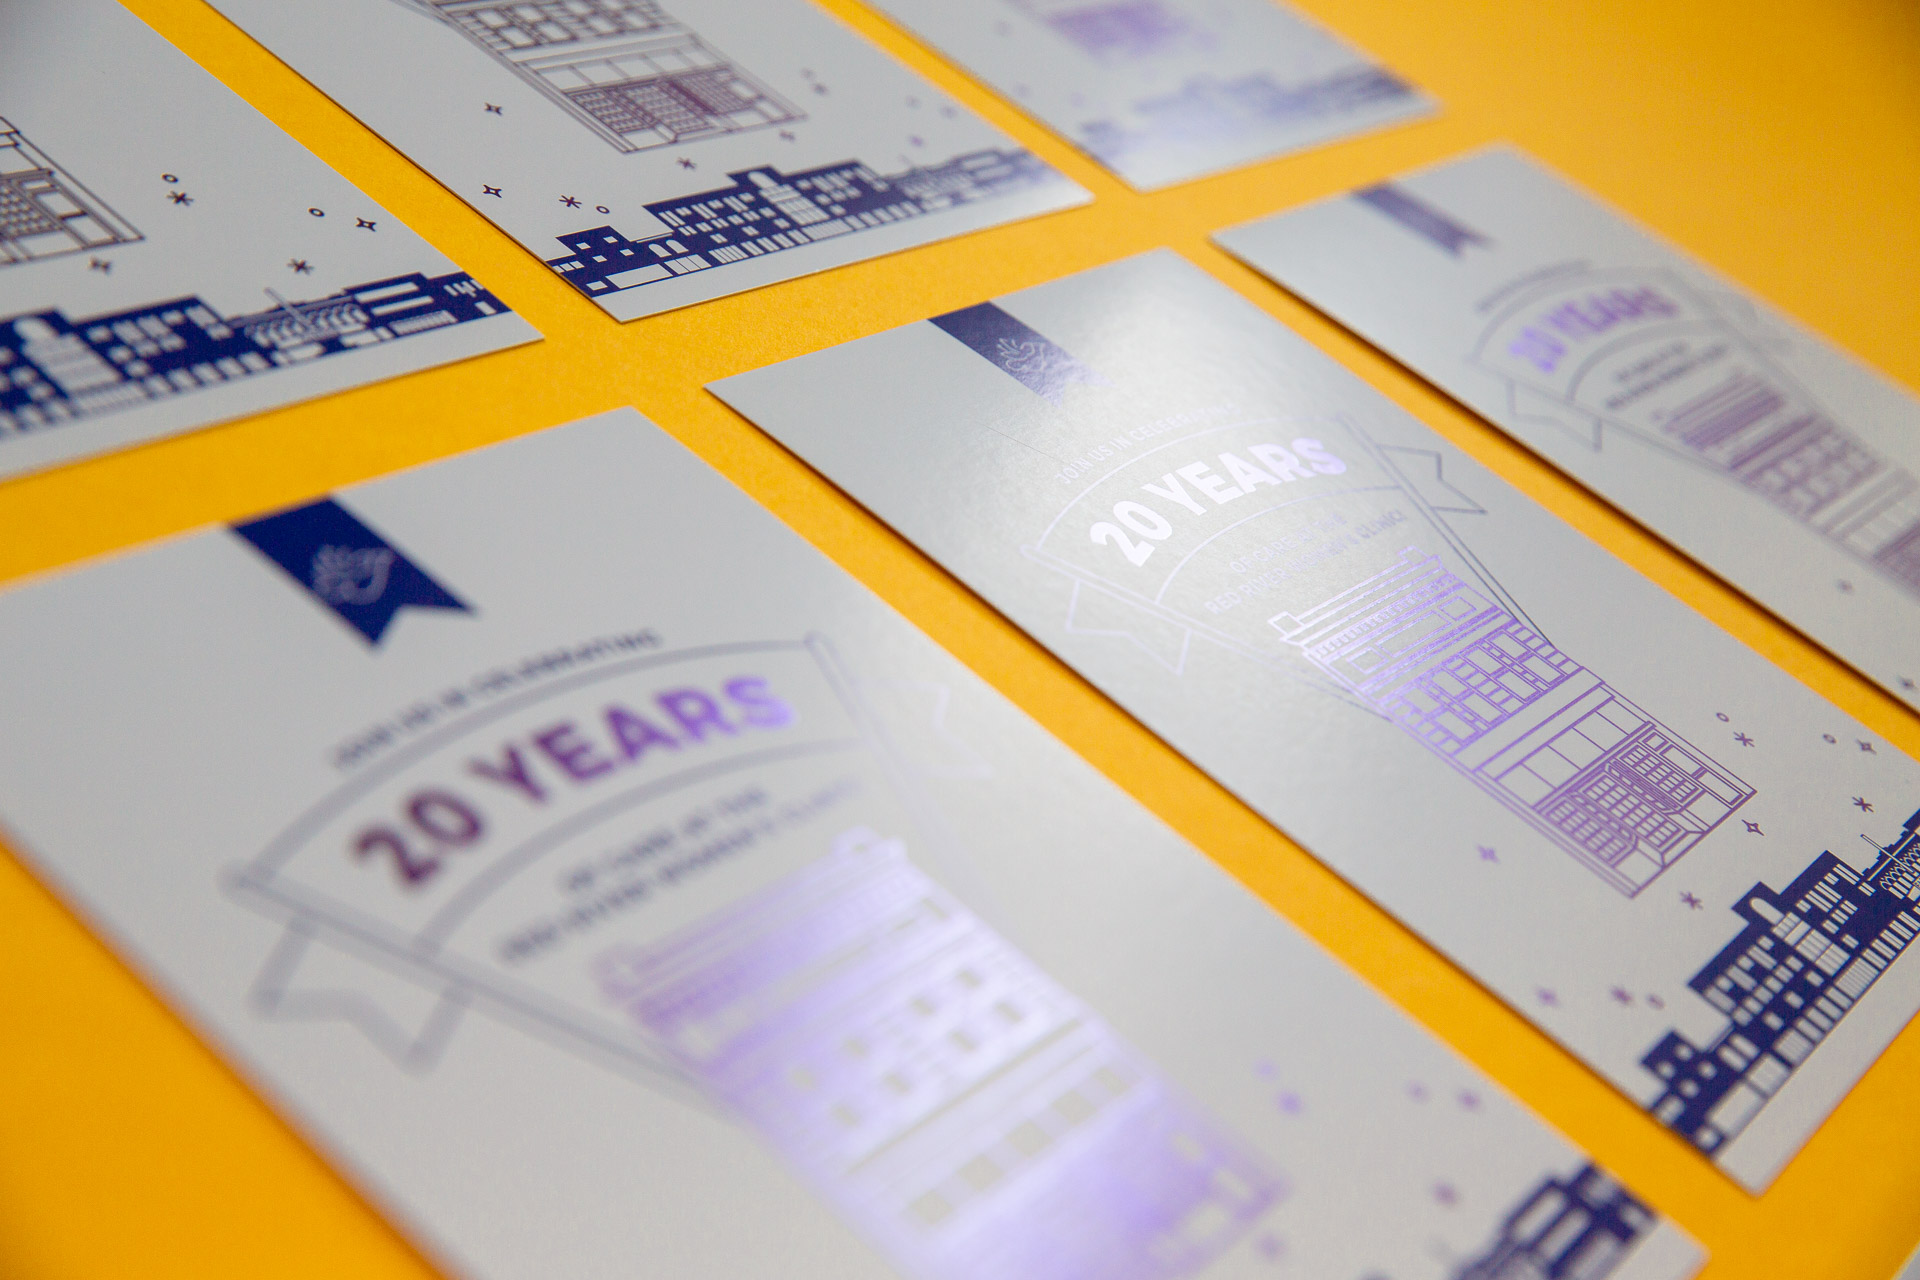 Grid of white postcards with purple illustration and lettering on a yellow background